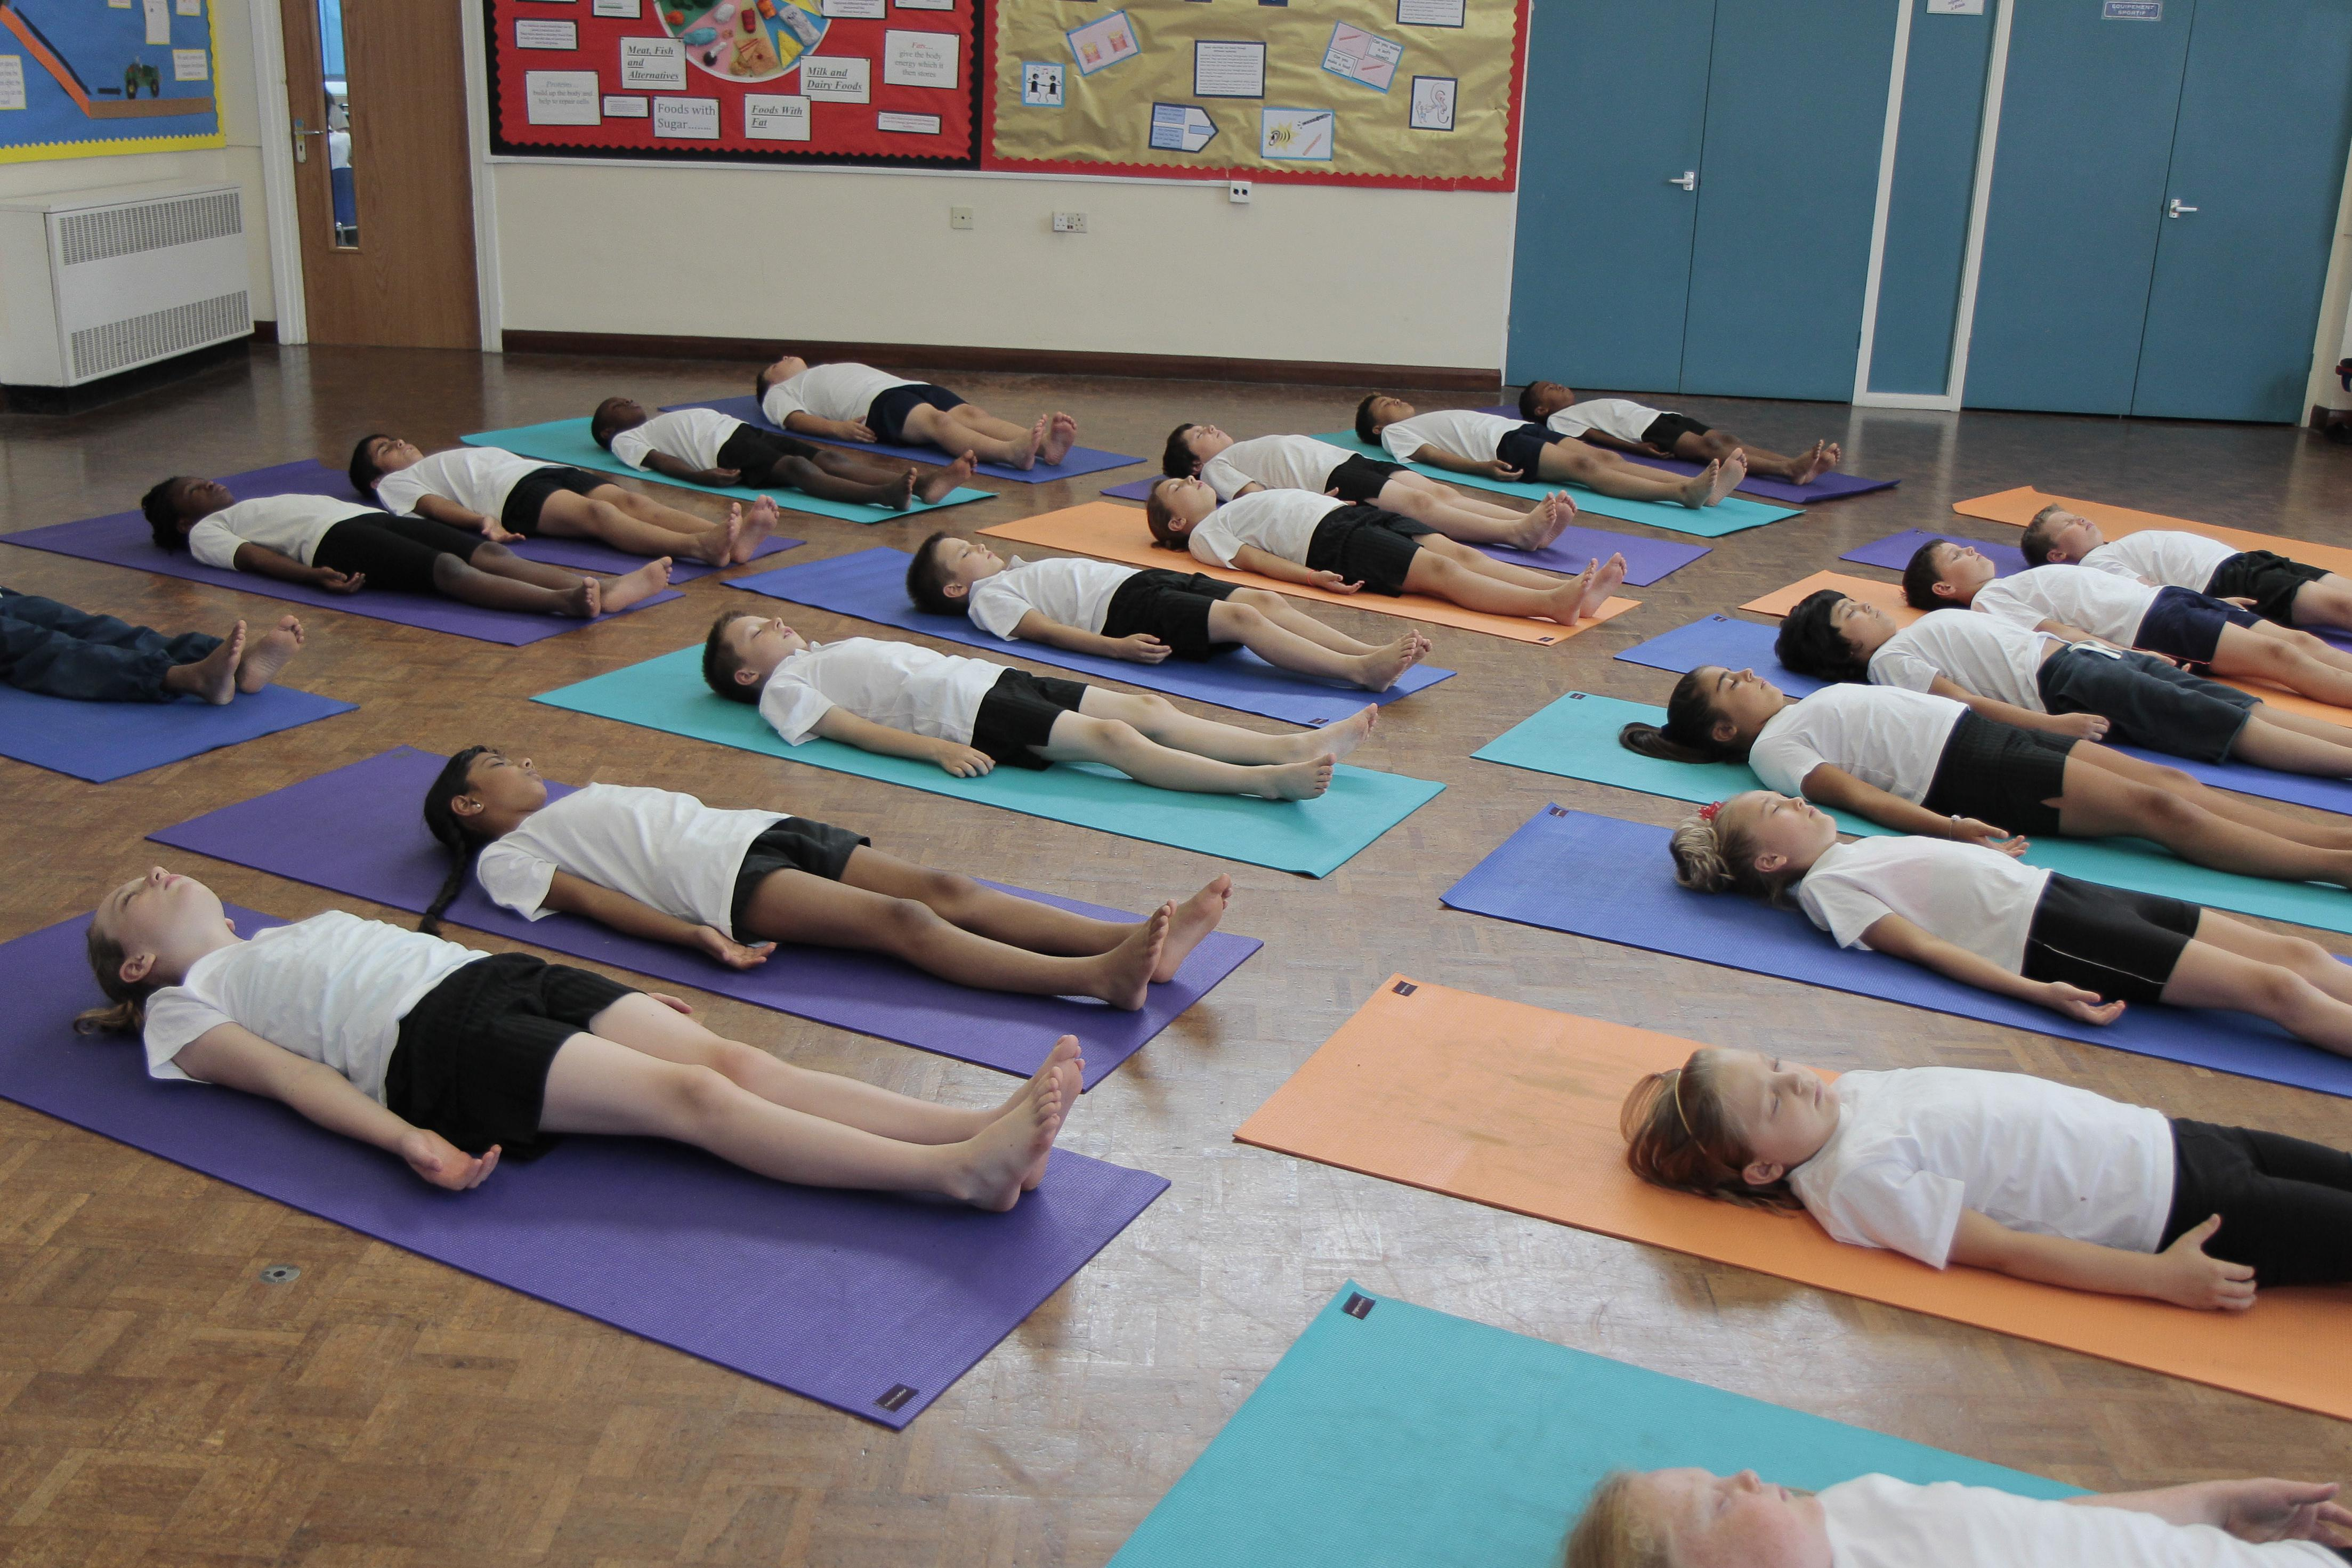 Everyone Included in the Yoga Lesson. Anita's Story